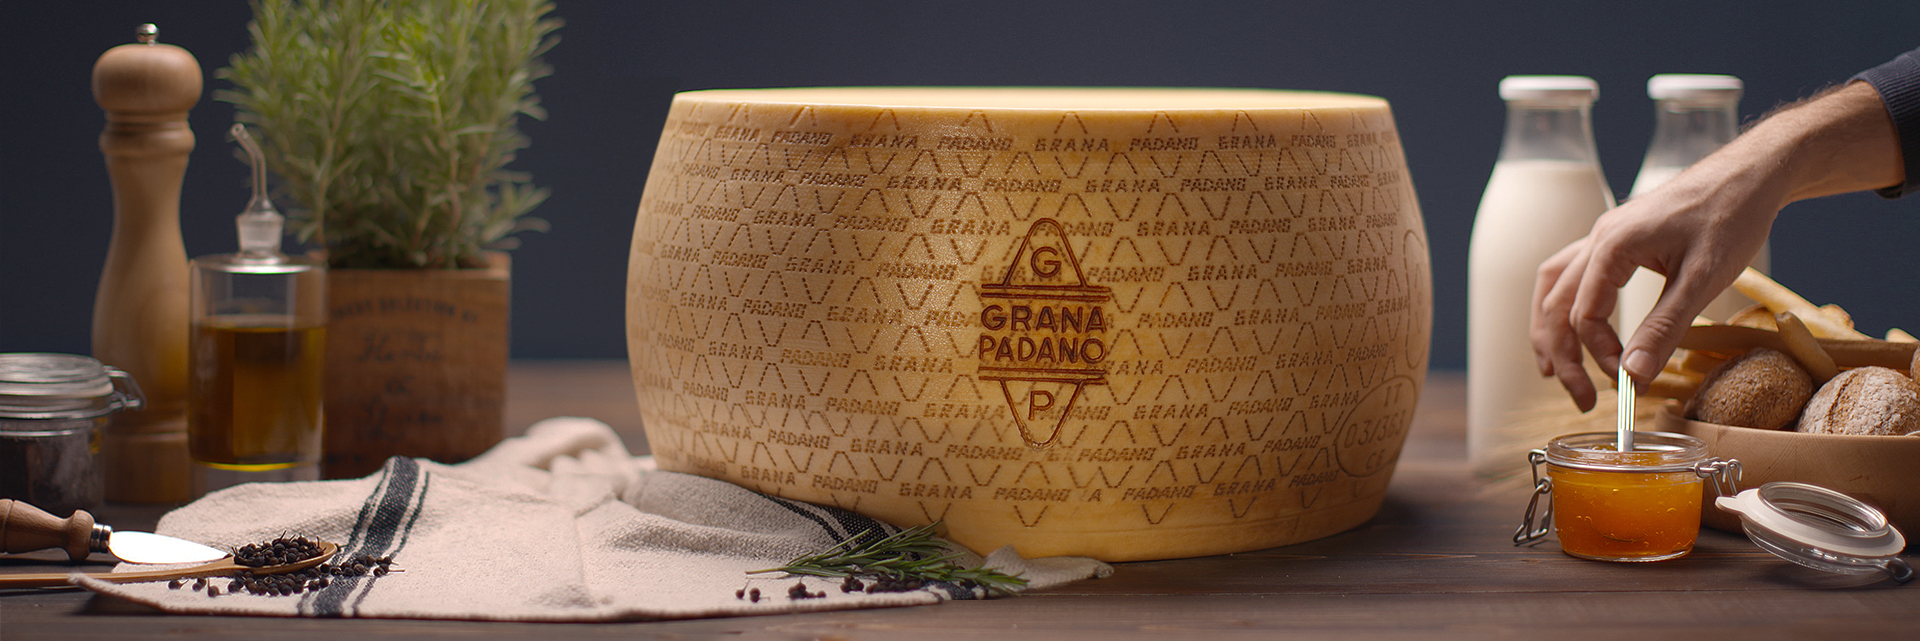 Monkey Talkie - Grana Padano - I numeri - Produzione video - Motion Graphics